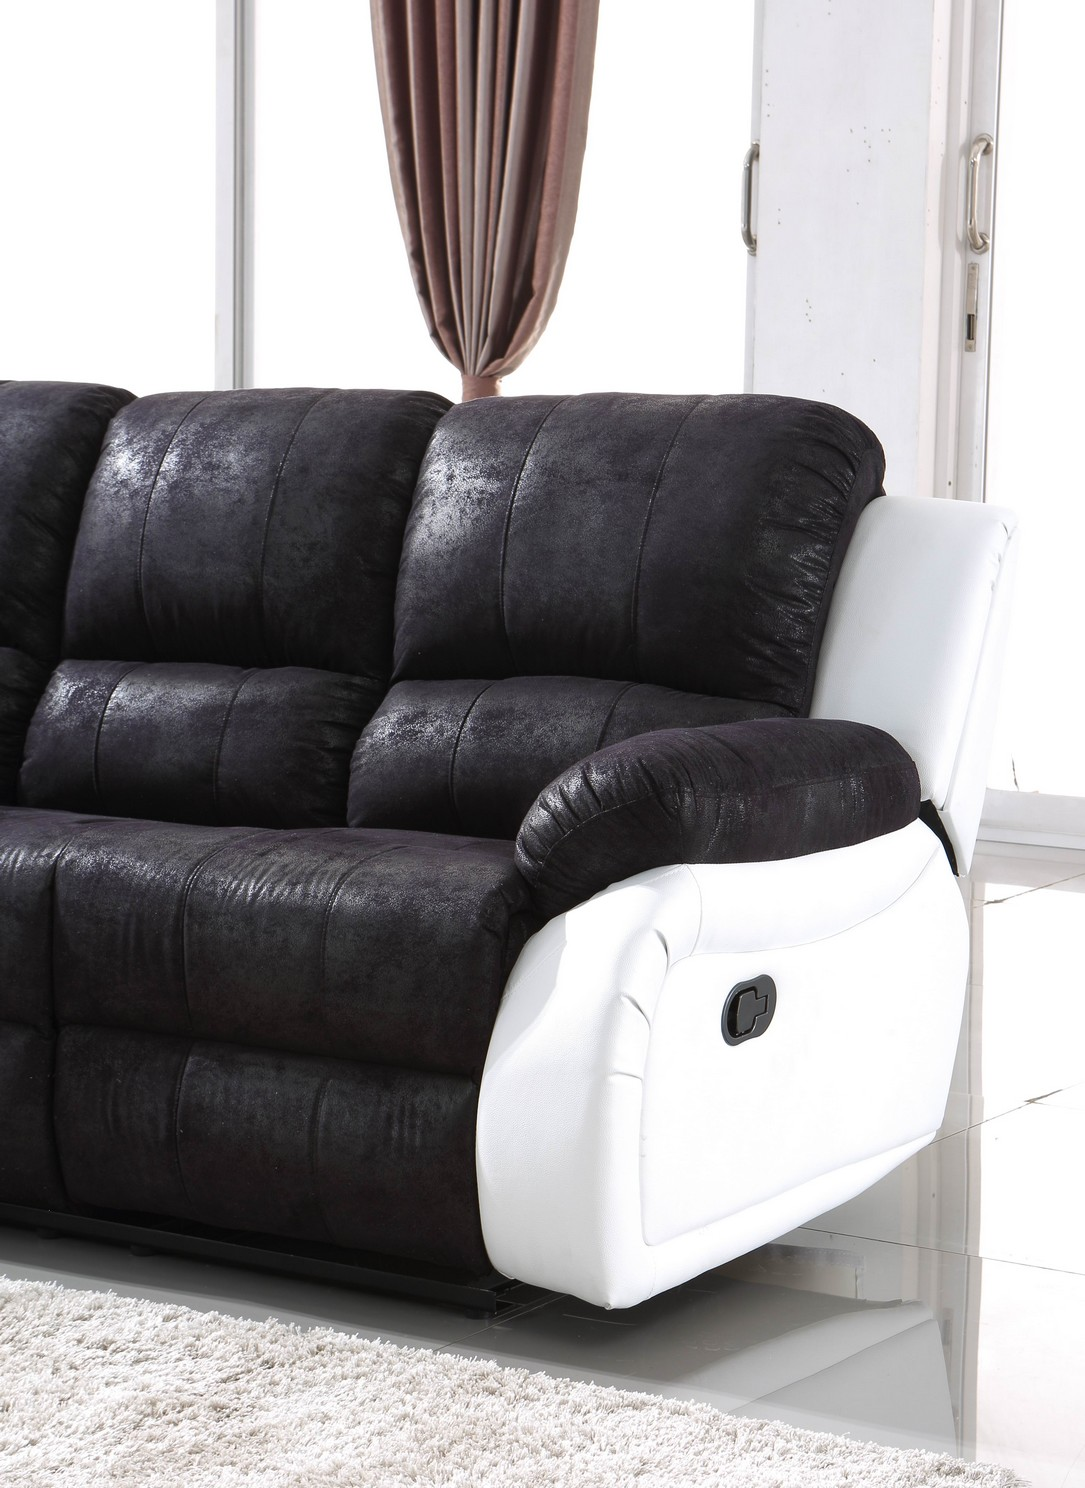 relax schlafsofa polsterm bel relaxsessel fernseh sessel. Black Bedroom Furniture Sets. Home Design Ideas